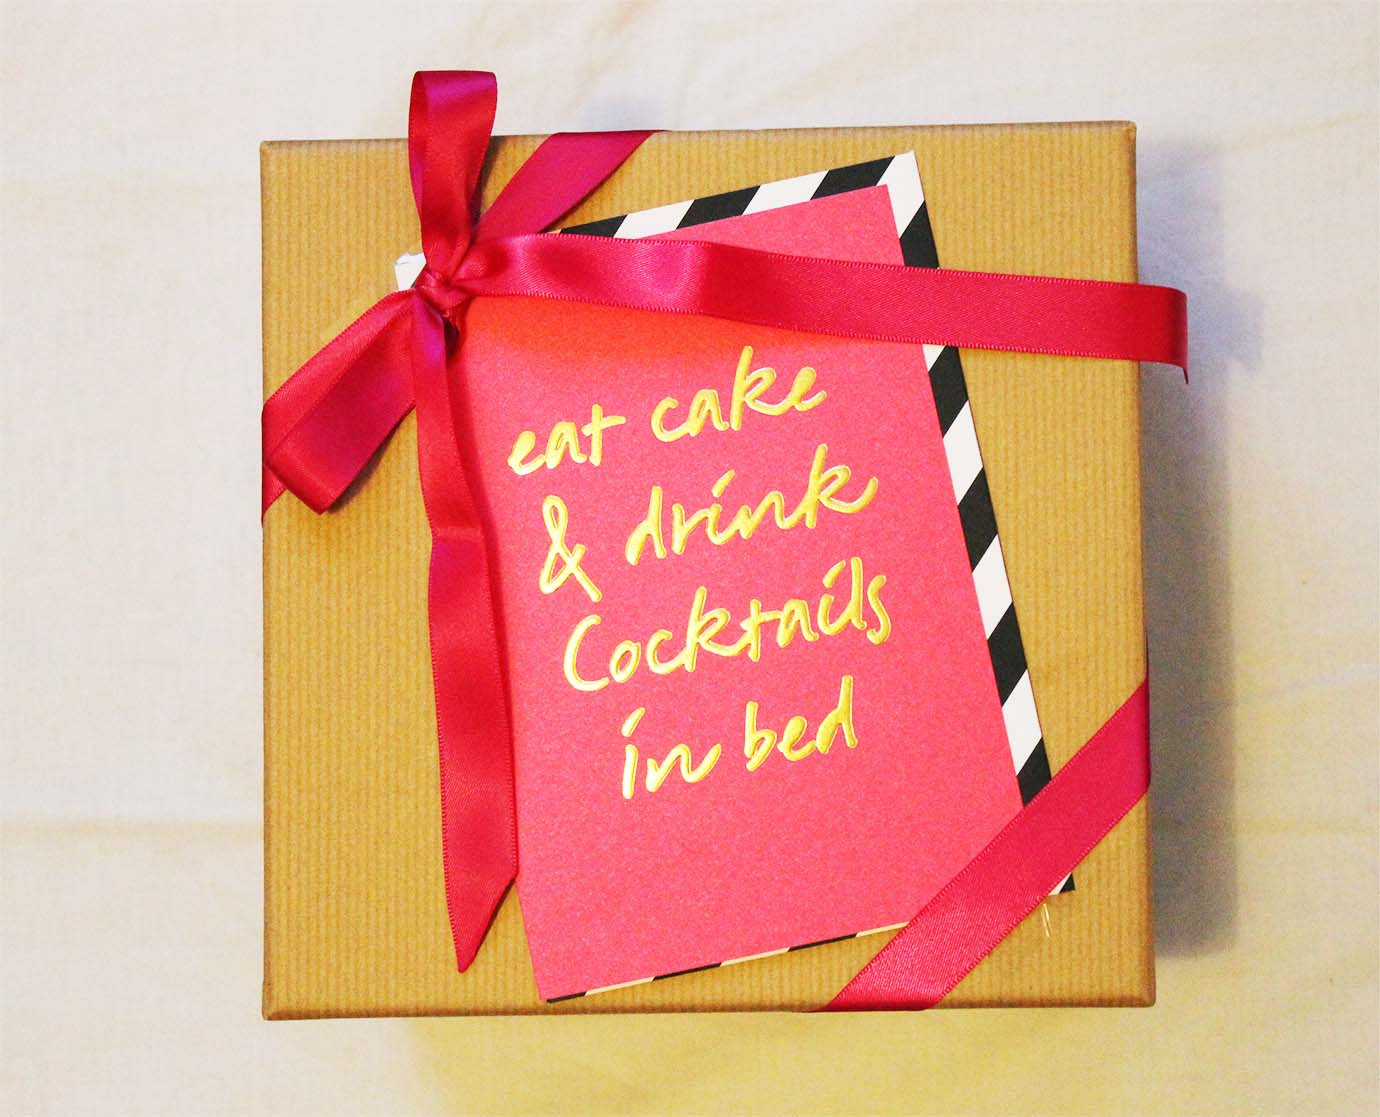 How To Wrap Birthday Presents 3 Easy Diy Ideas Cake And Whisky